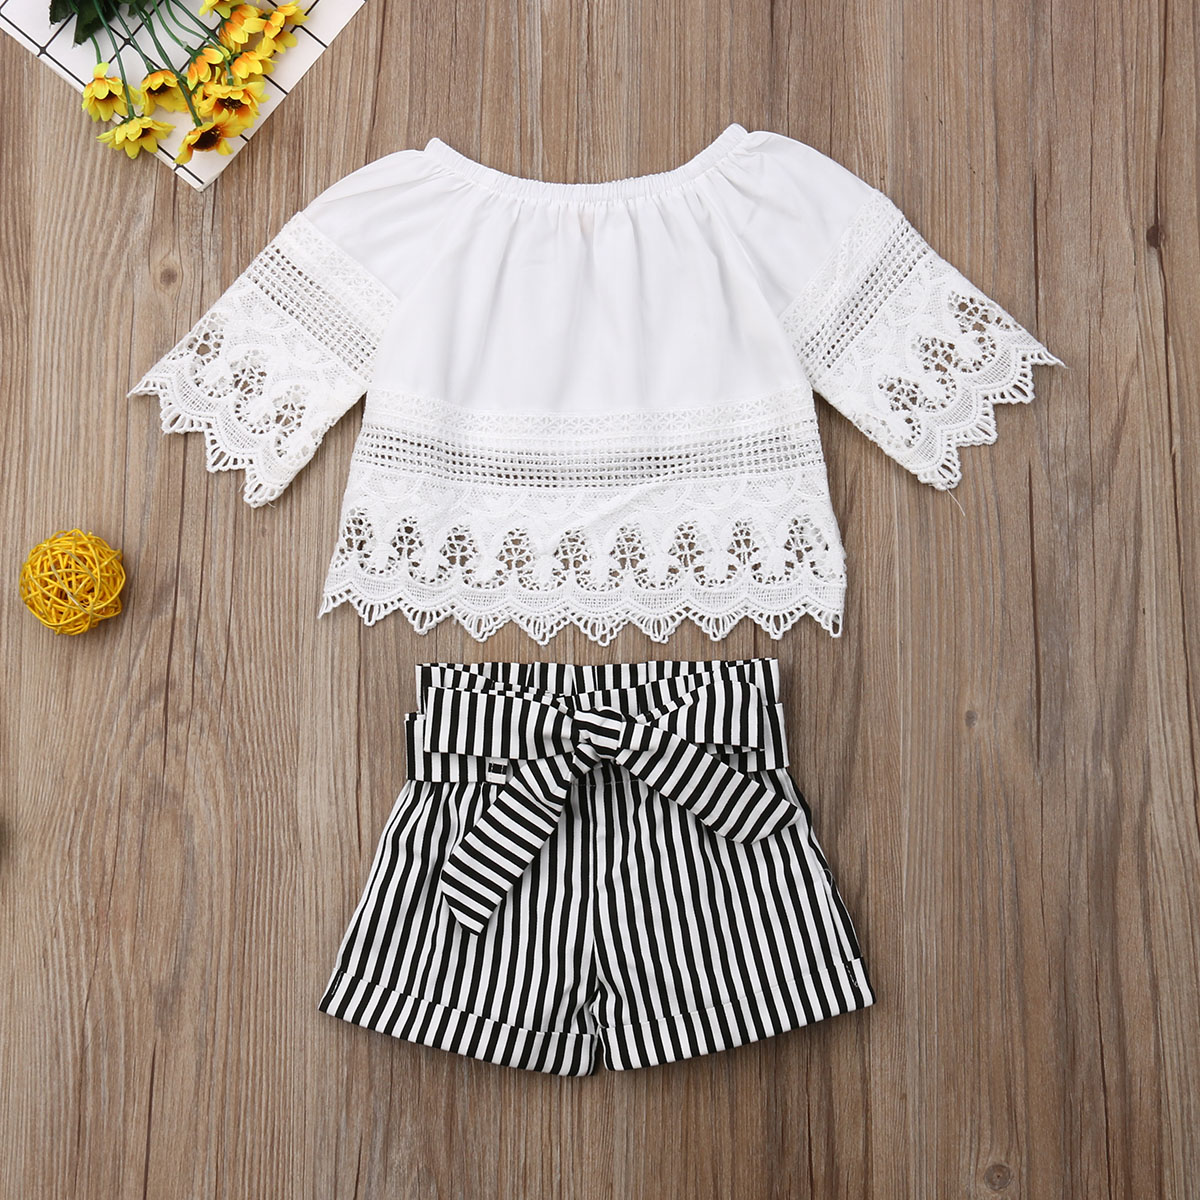 Pudcoco Toddler Baby Girl Clothes Solid Color Lace Flower Ruffle Long Sleeve Tops Striped Short Pants 2Pcs Outfits Clothes